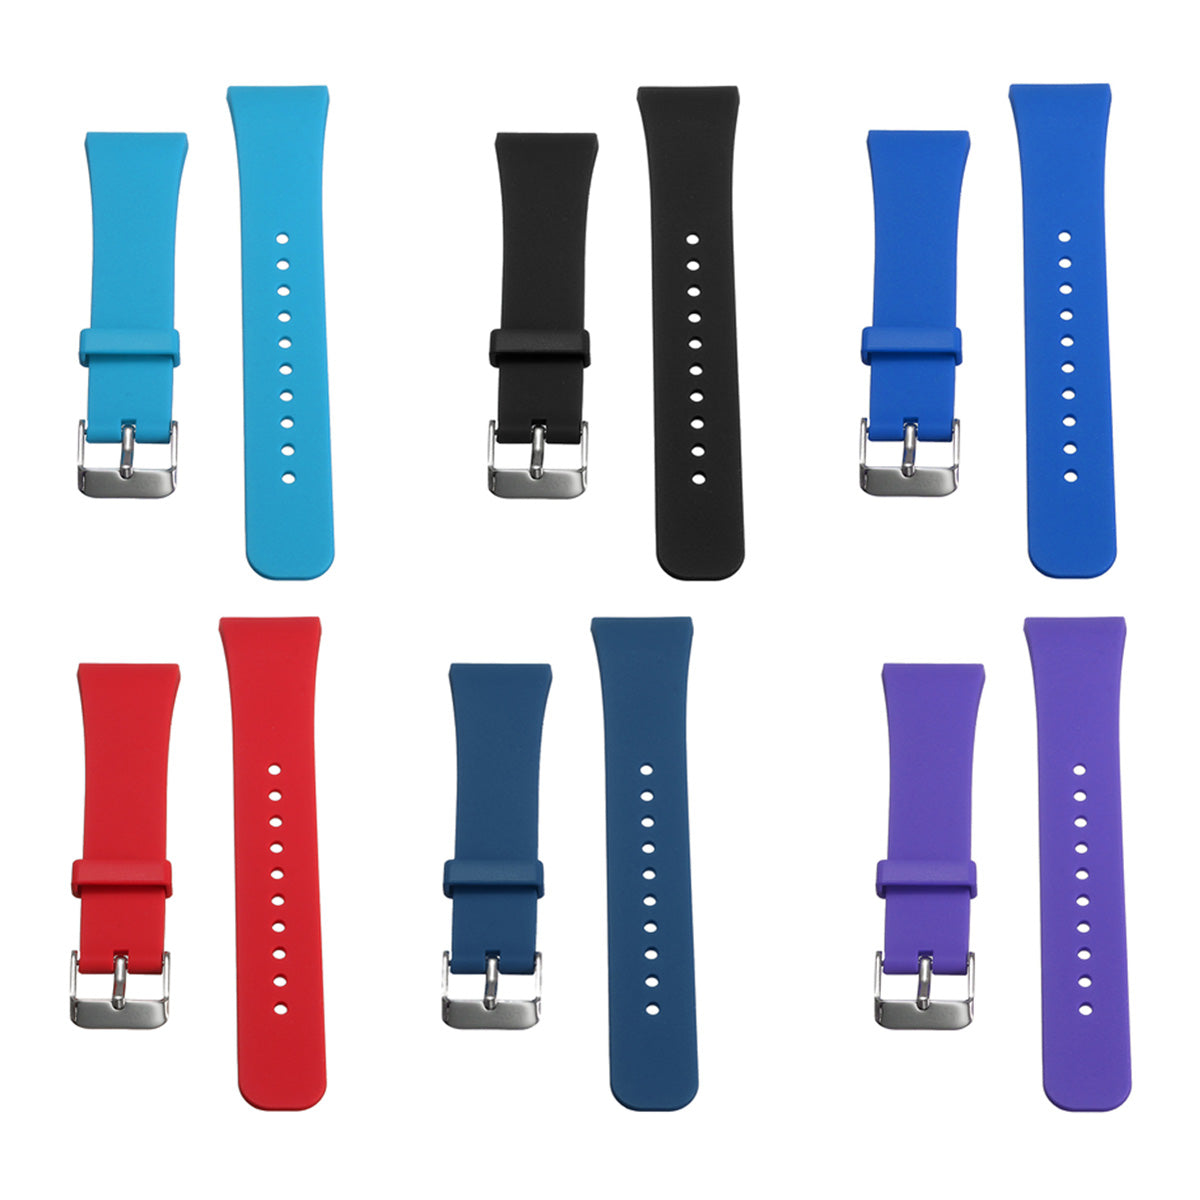 Samsung Gear Fit 2 11.5-17.5cm Silicone Soft Replacement Smart Wrist Strap For Samsung Gear Fit 2